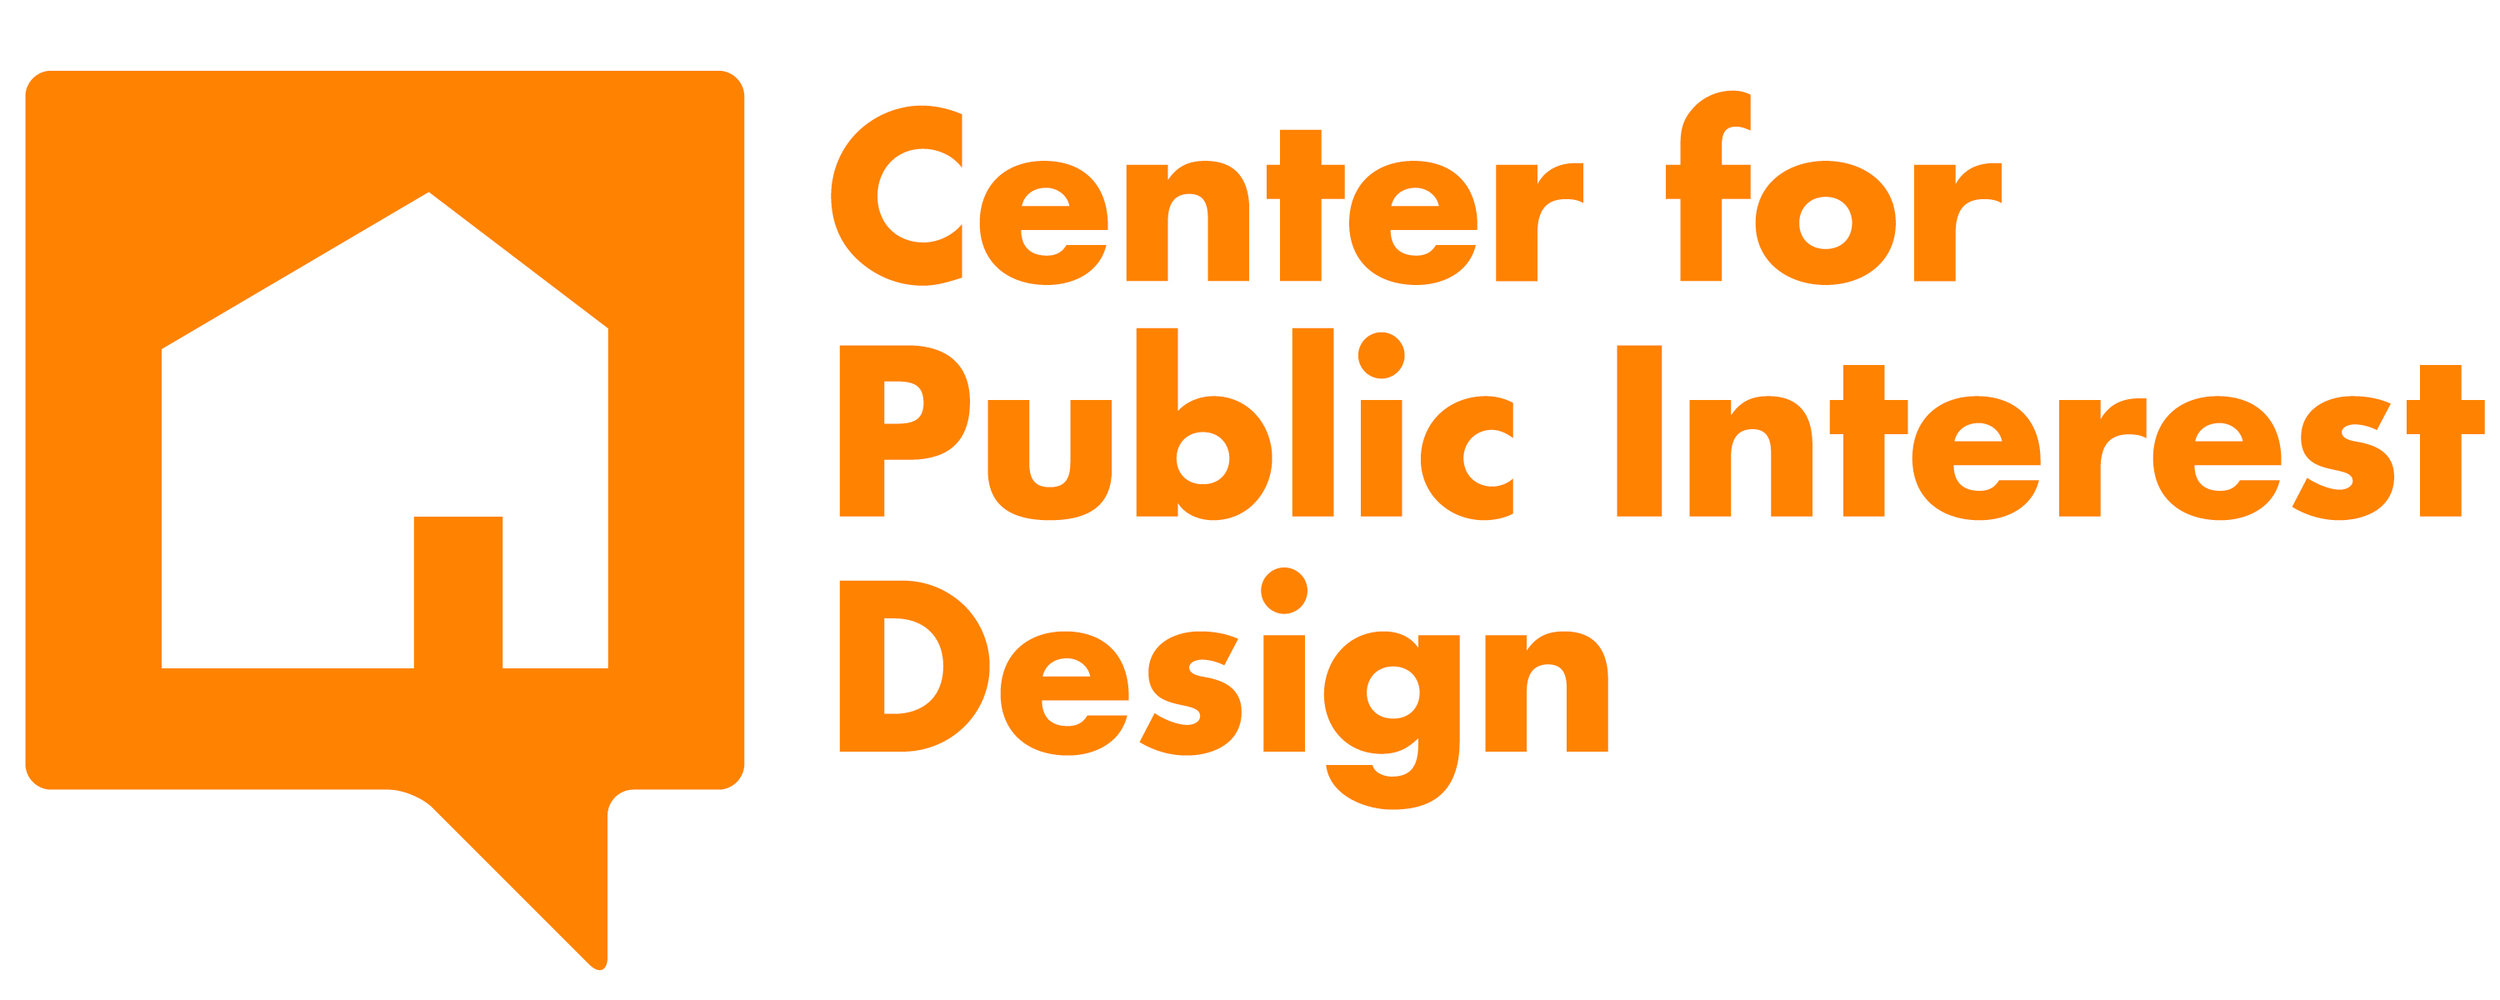 The Center for Public Interest Design is a partner of the project. Logo Above.